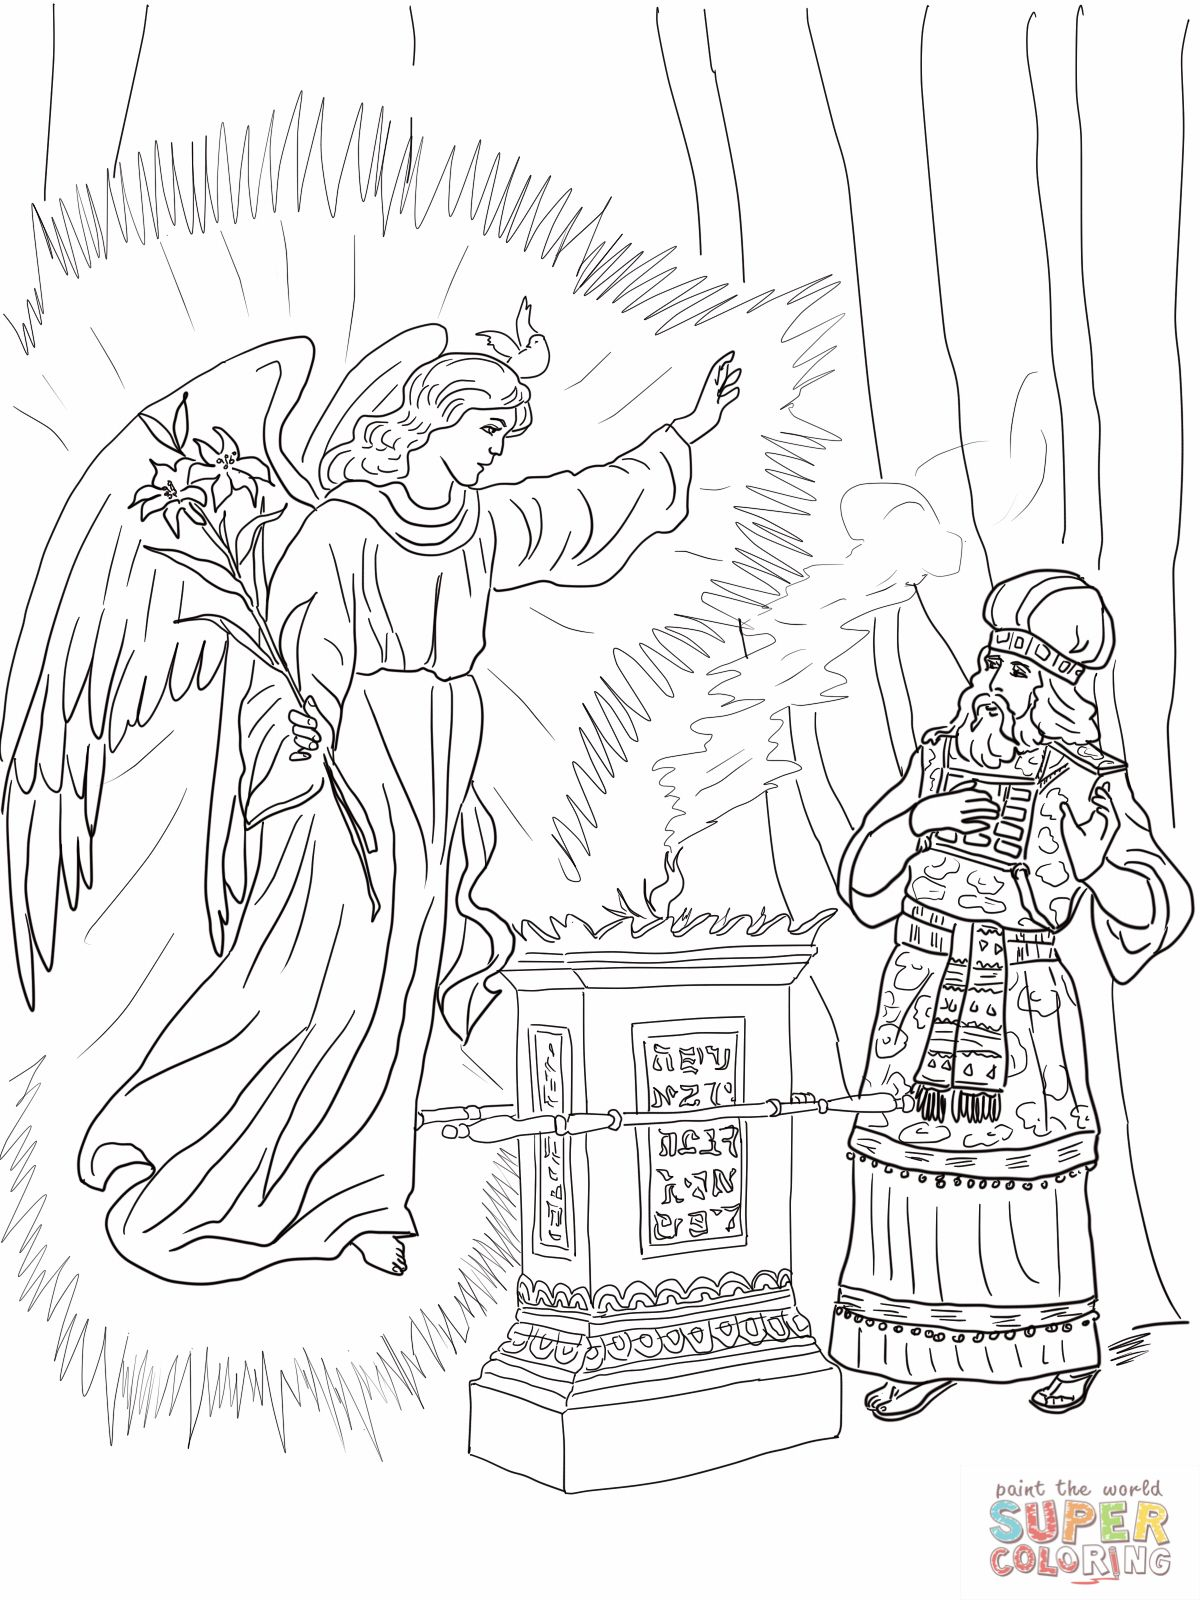 2 Angel Visits Zechariah Coloring Page